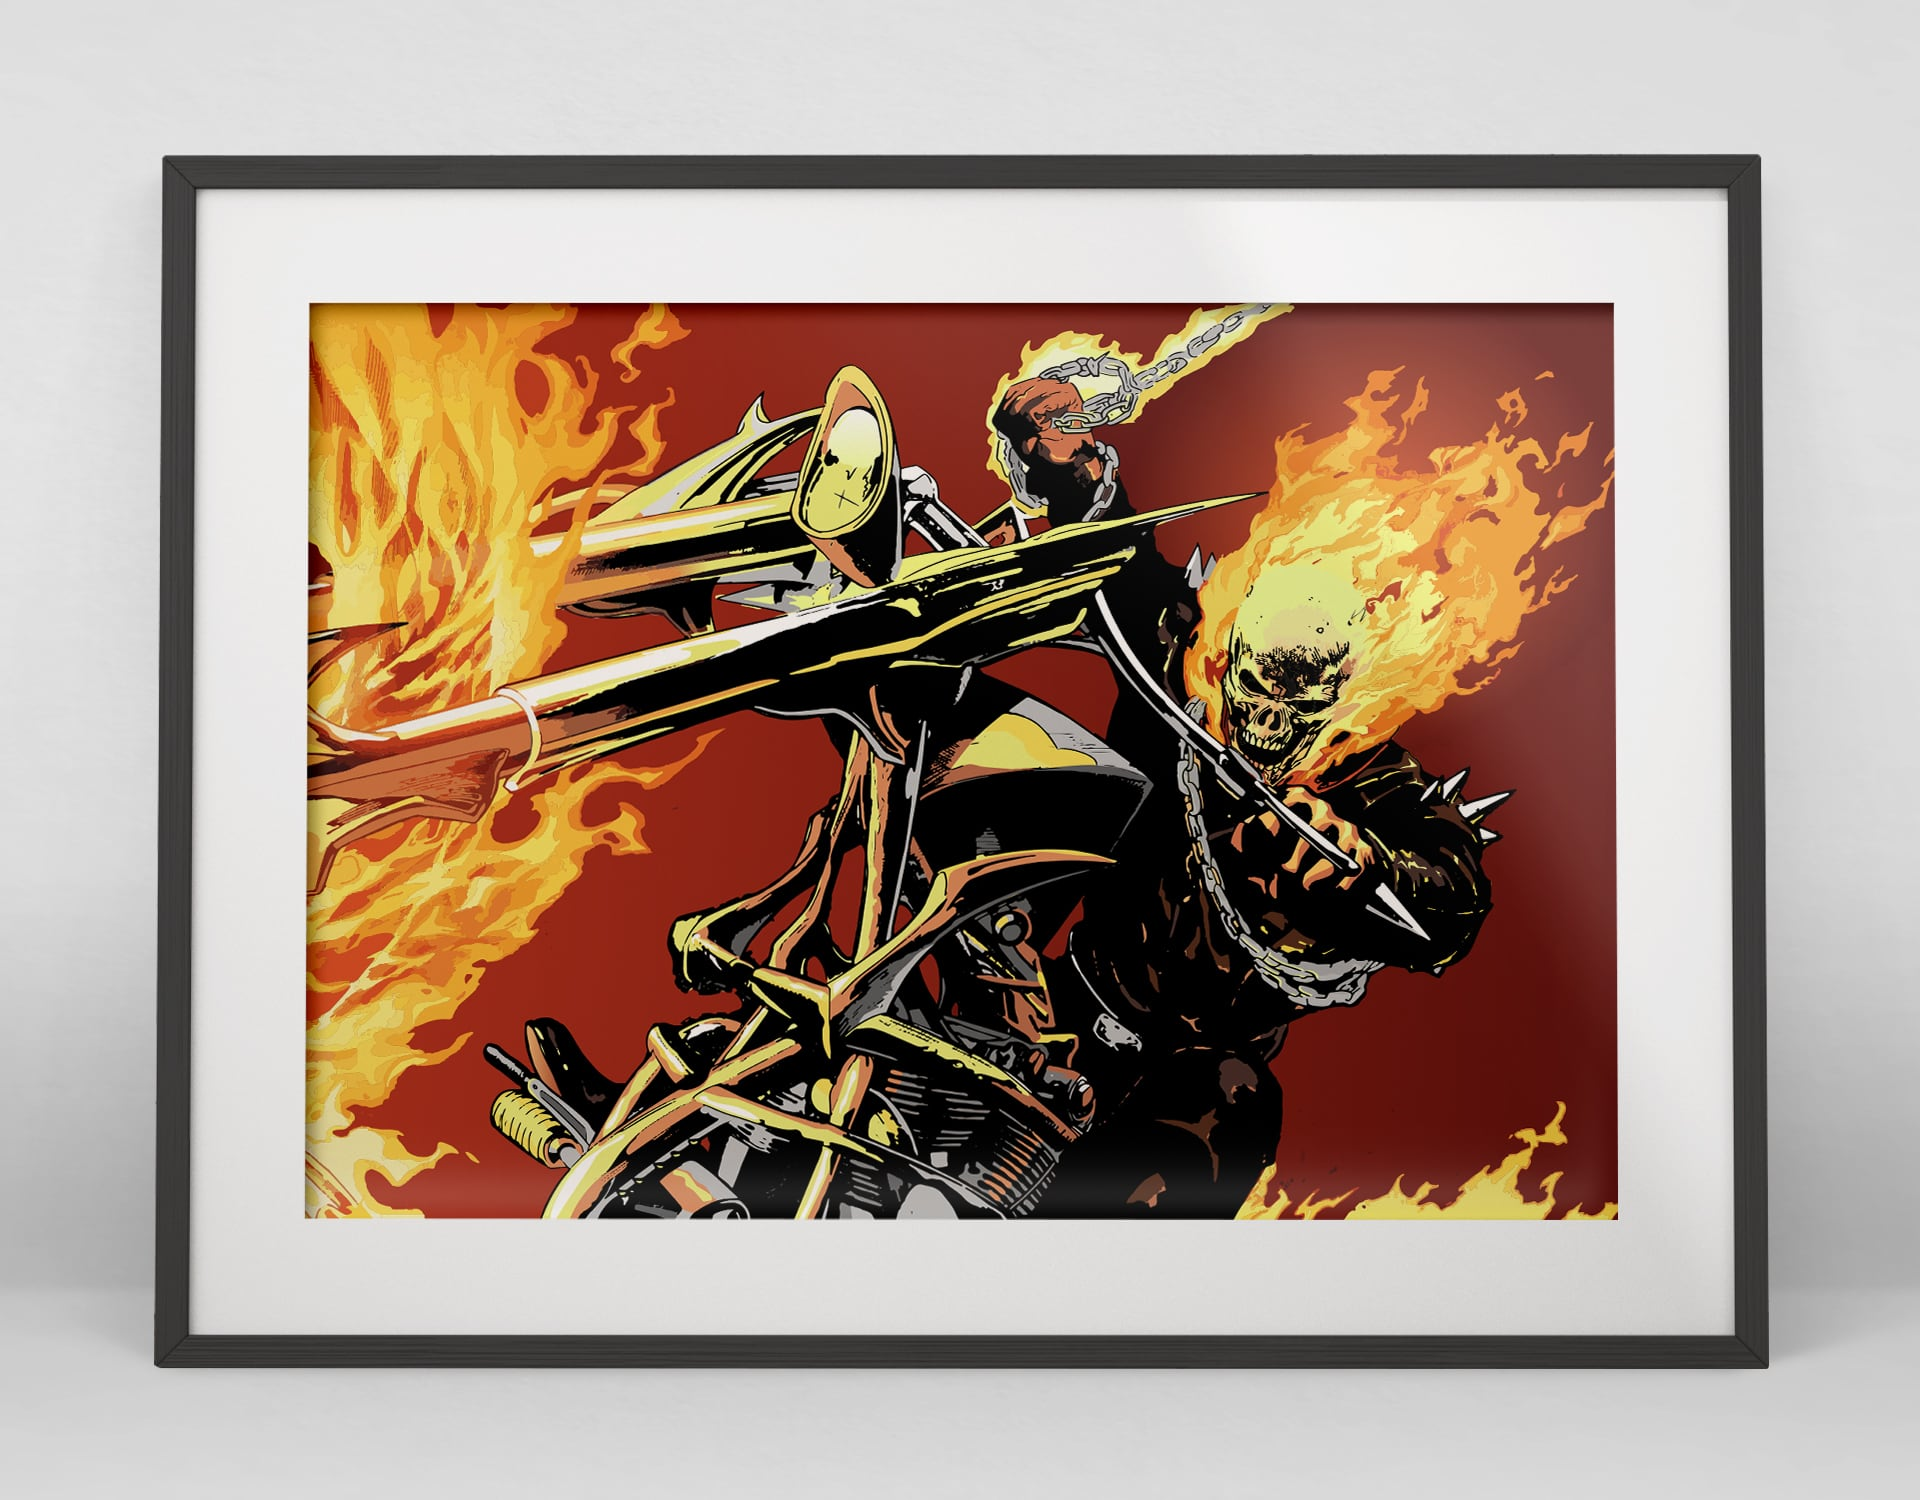 Ghostrider Illustration